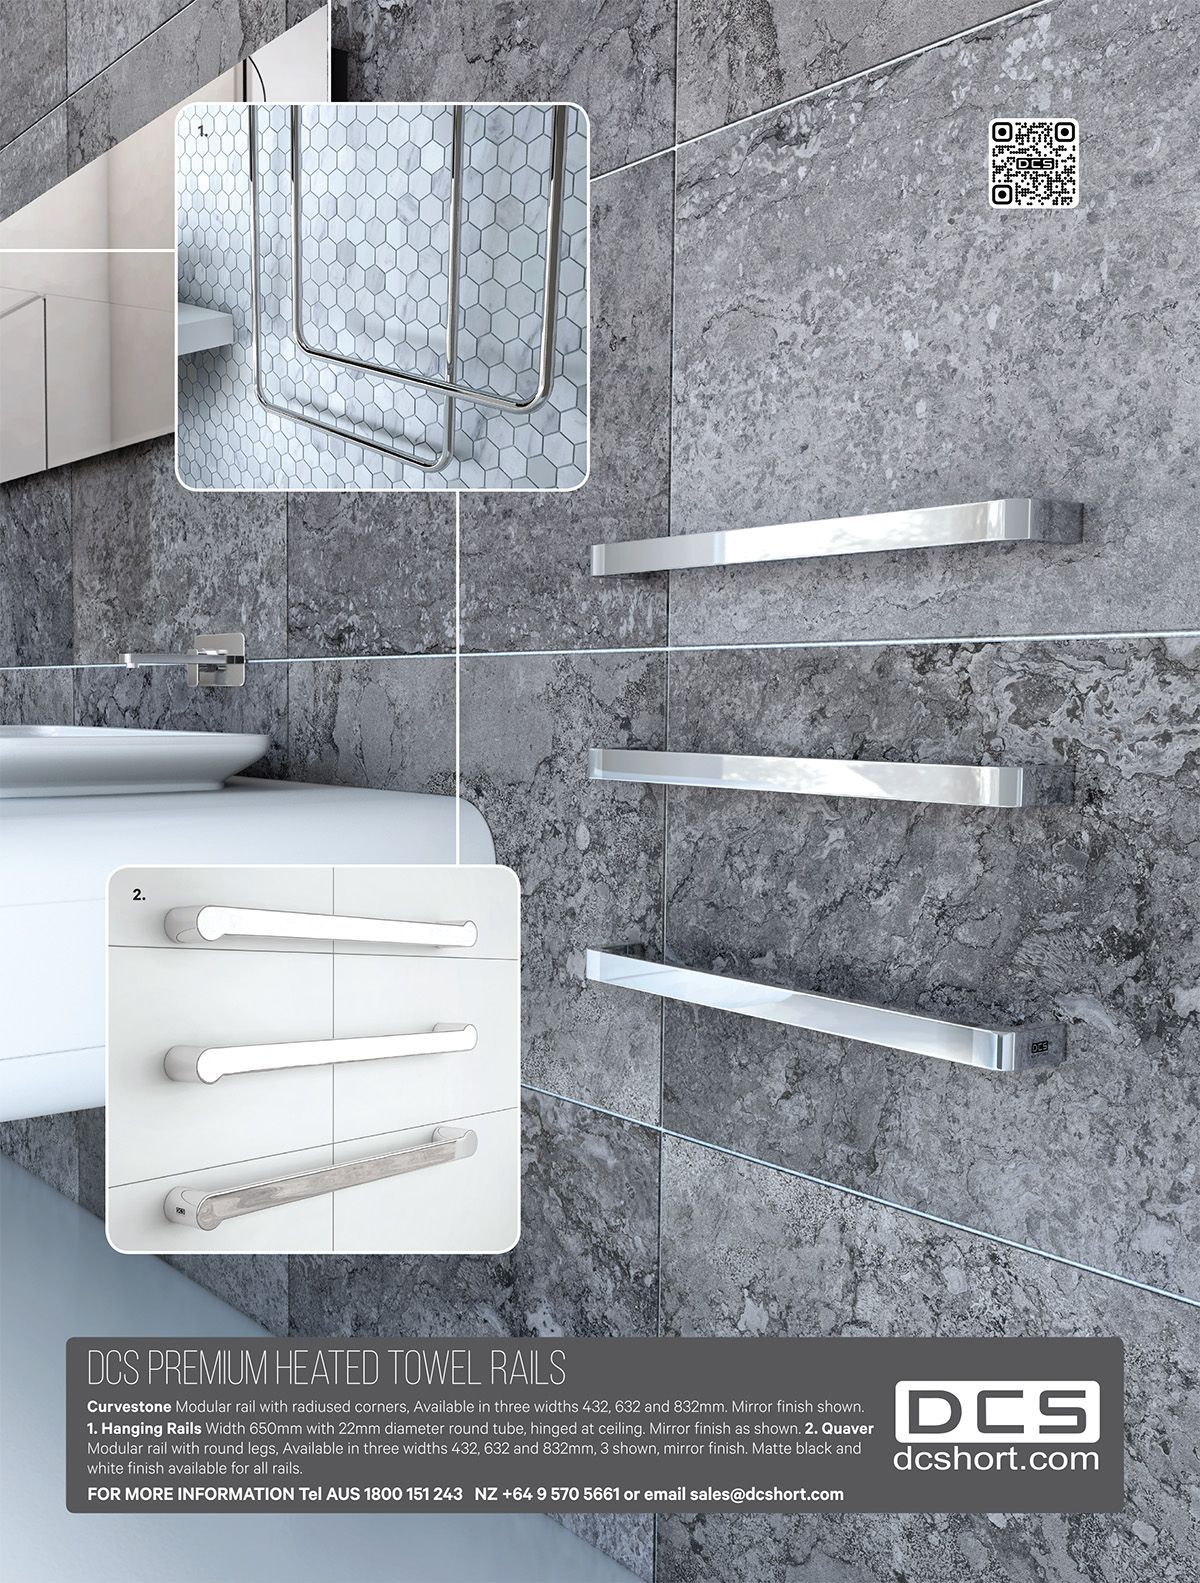 Trends 2015 - DCS Heated Towel Rails